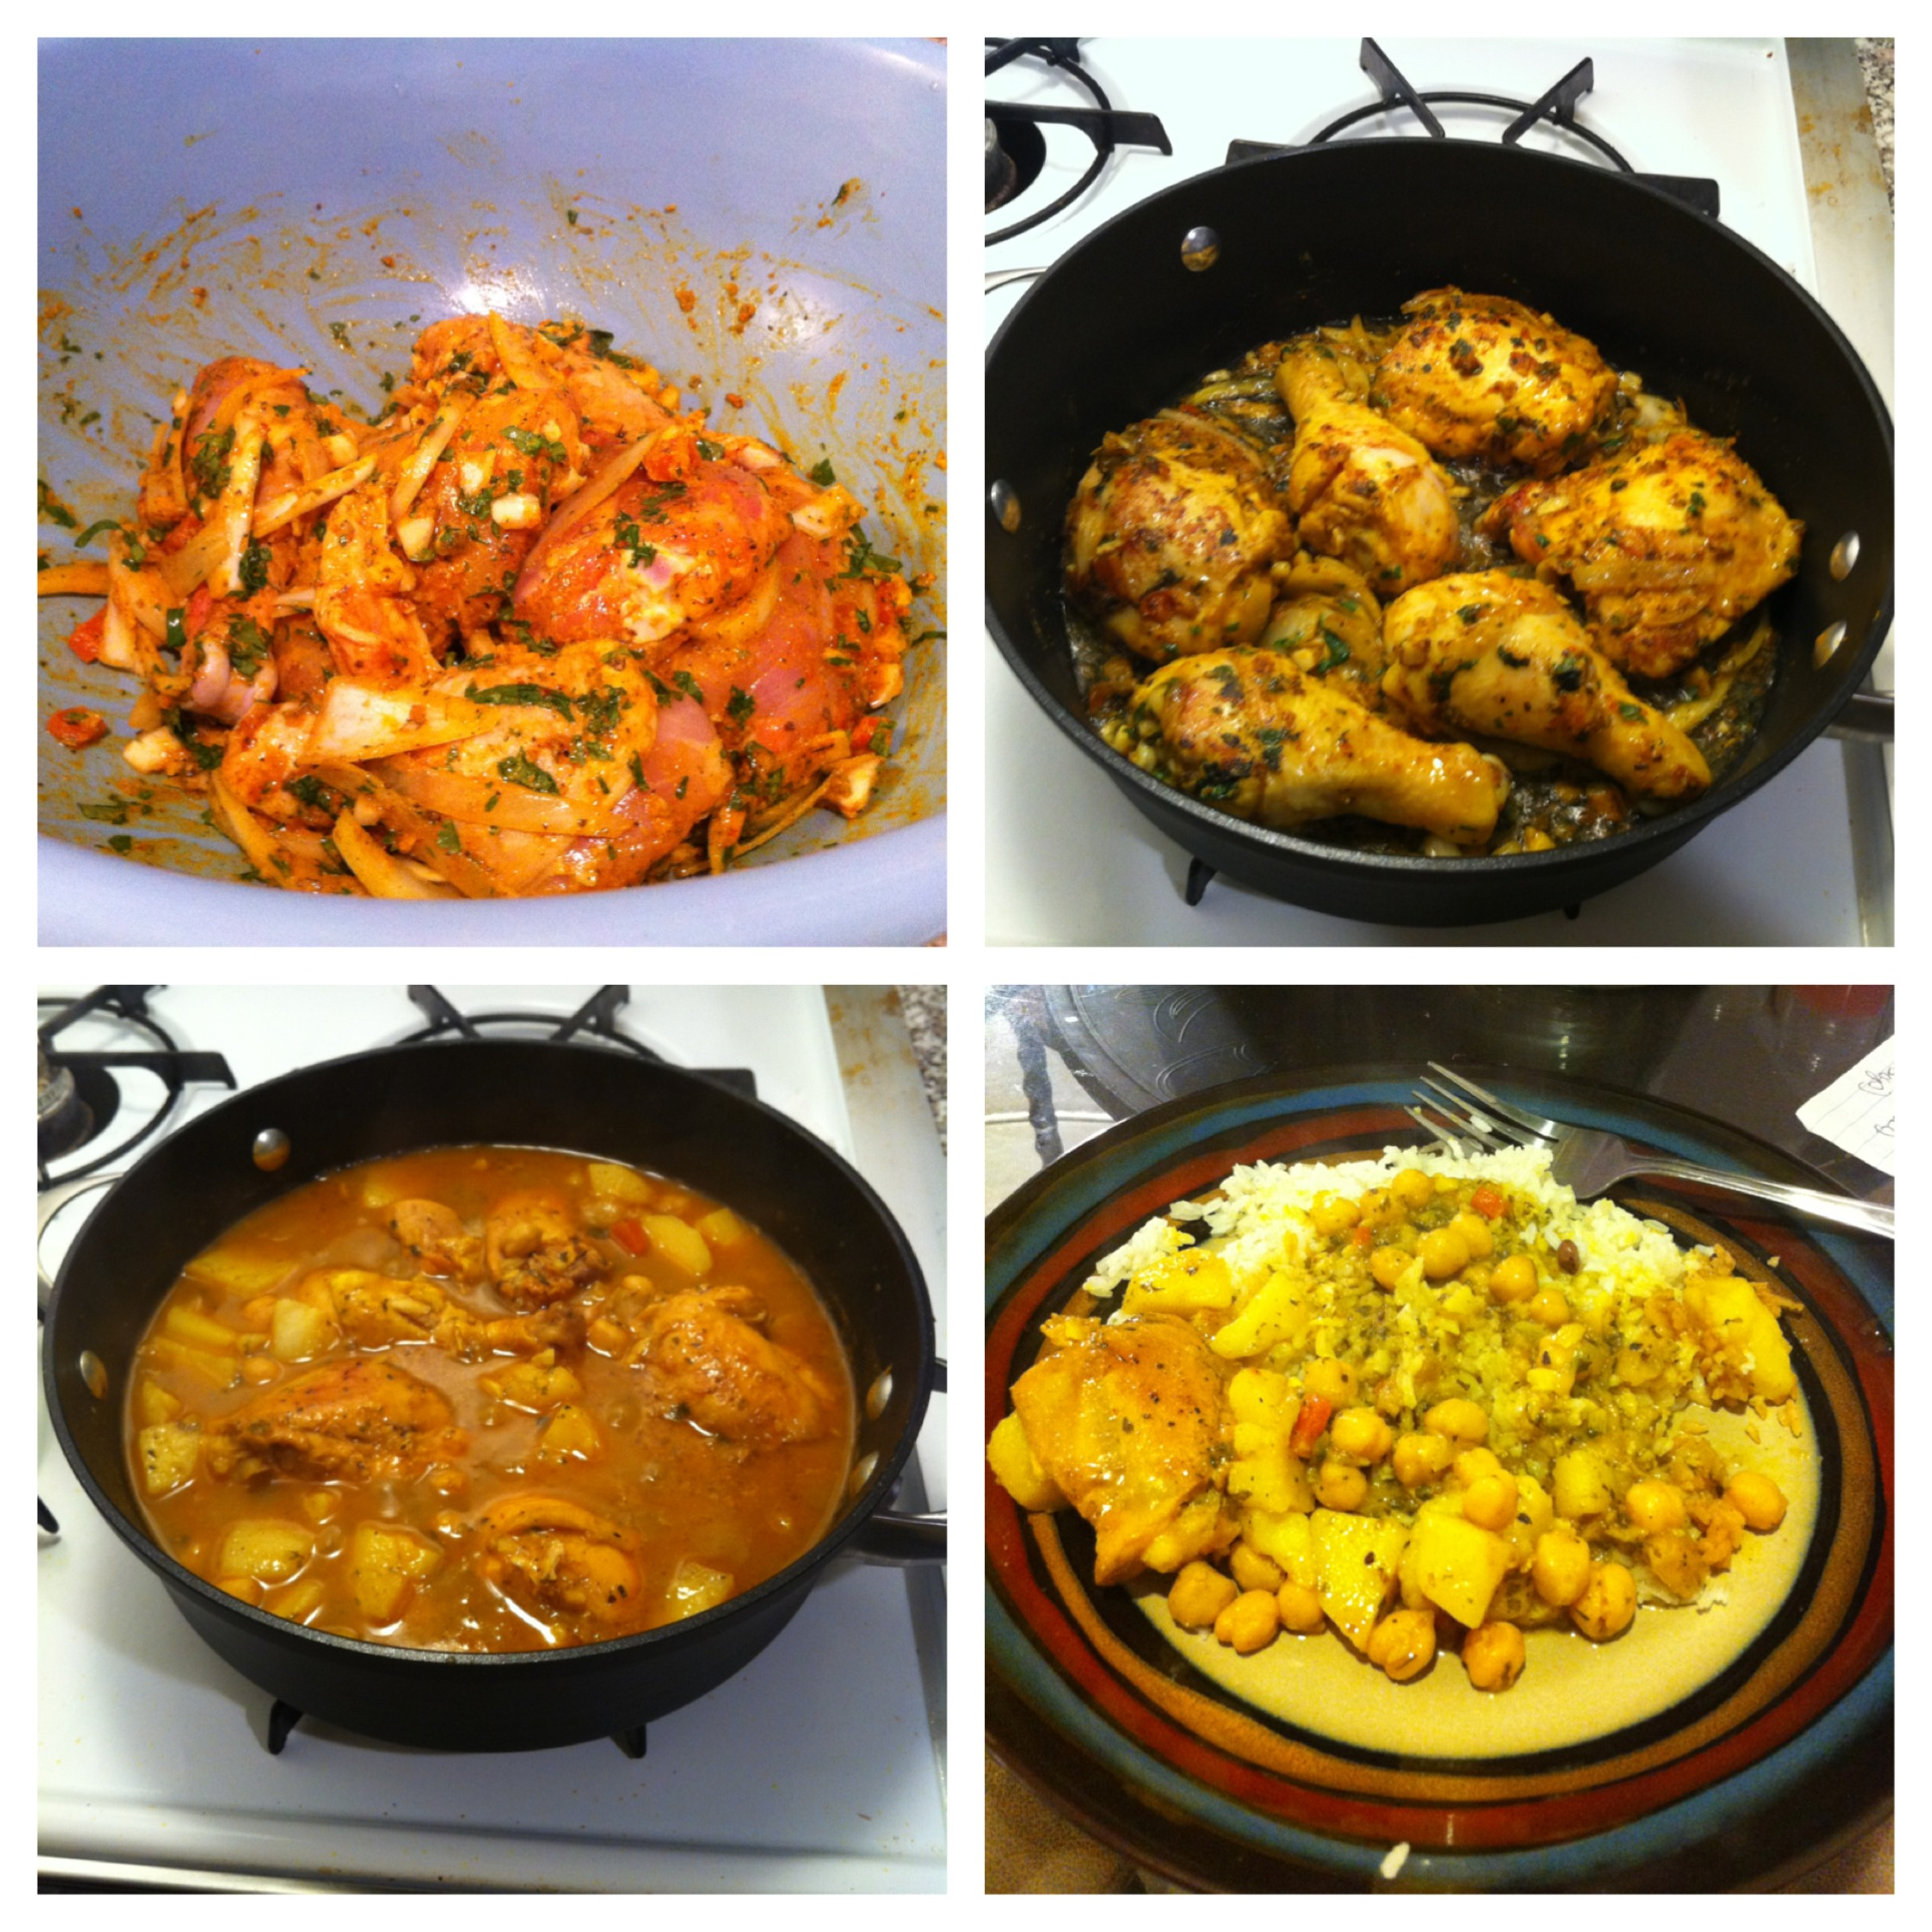 Fideua Cooked In Stock With Sofrito moreover Msenplacecajuncreole blogspot furthermore Food  work Magazine October 2015 Recipe Index additionally Stews together with Borikenrestaurant. on y pork stew with peas and sausage